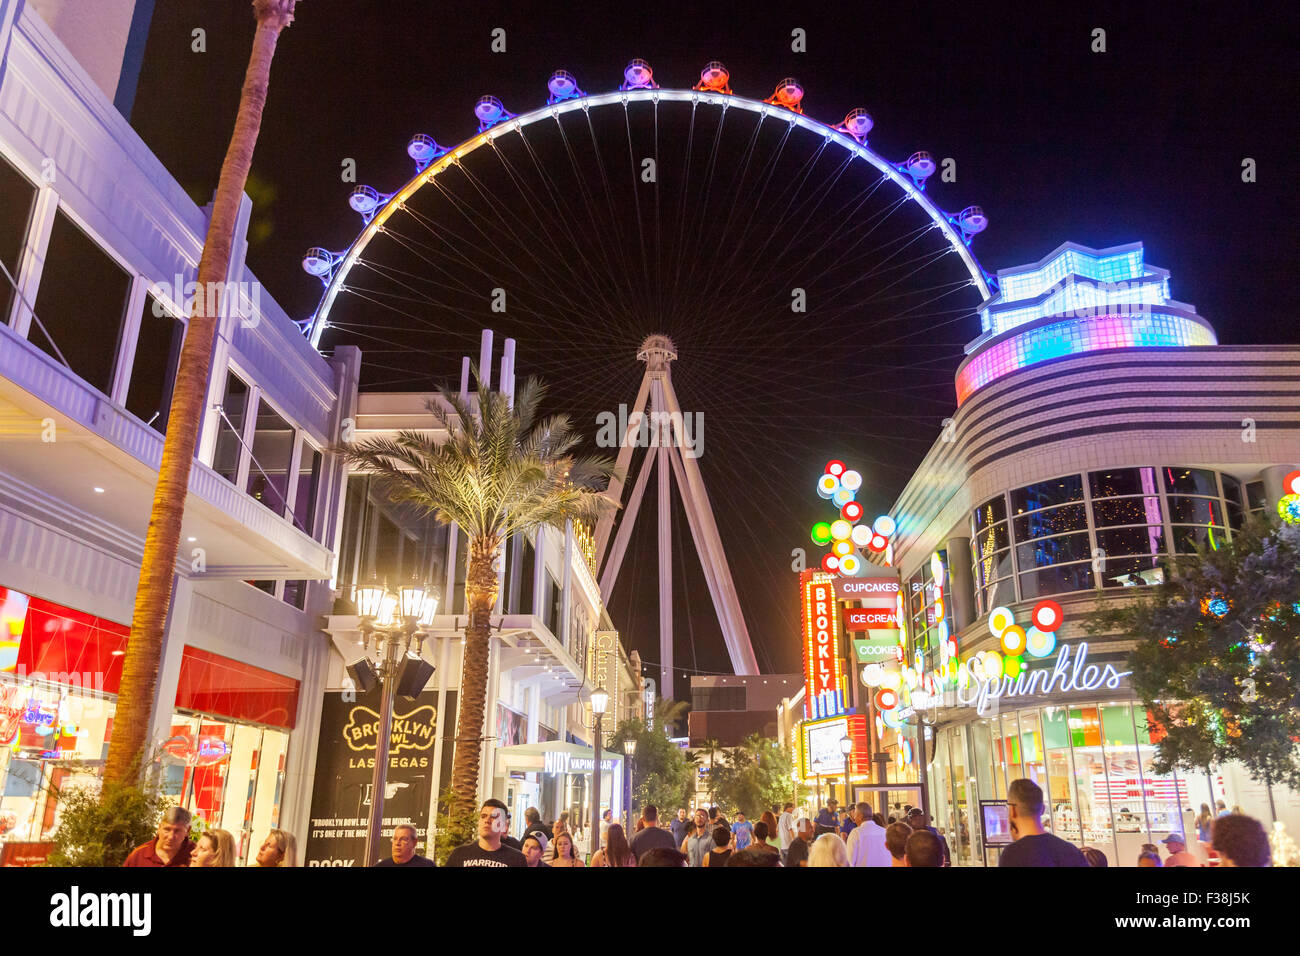 A nighttime view of the High Roller Ferris Wheel in Las Vegas, Nevada. - Stock Image